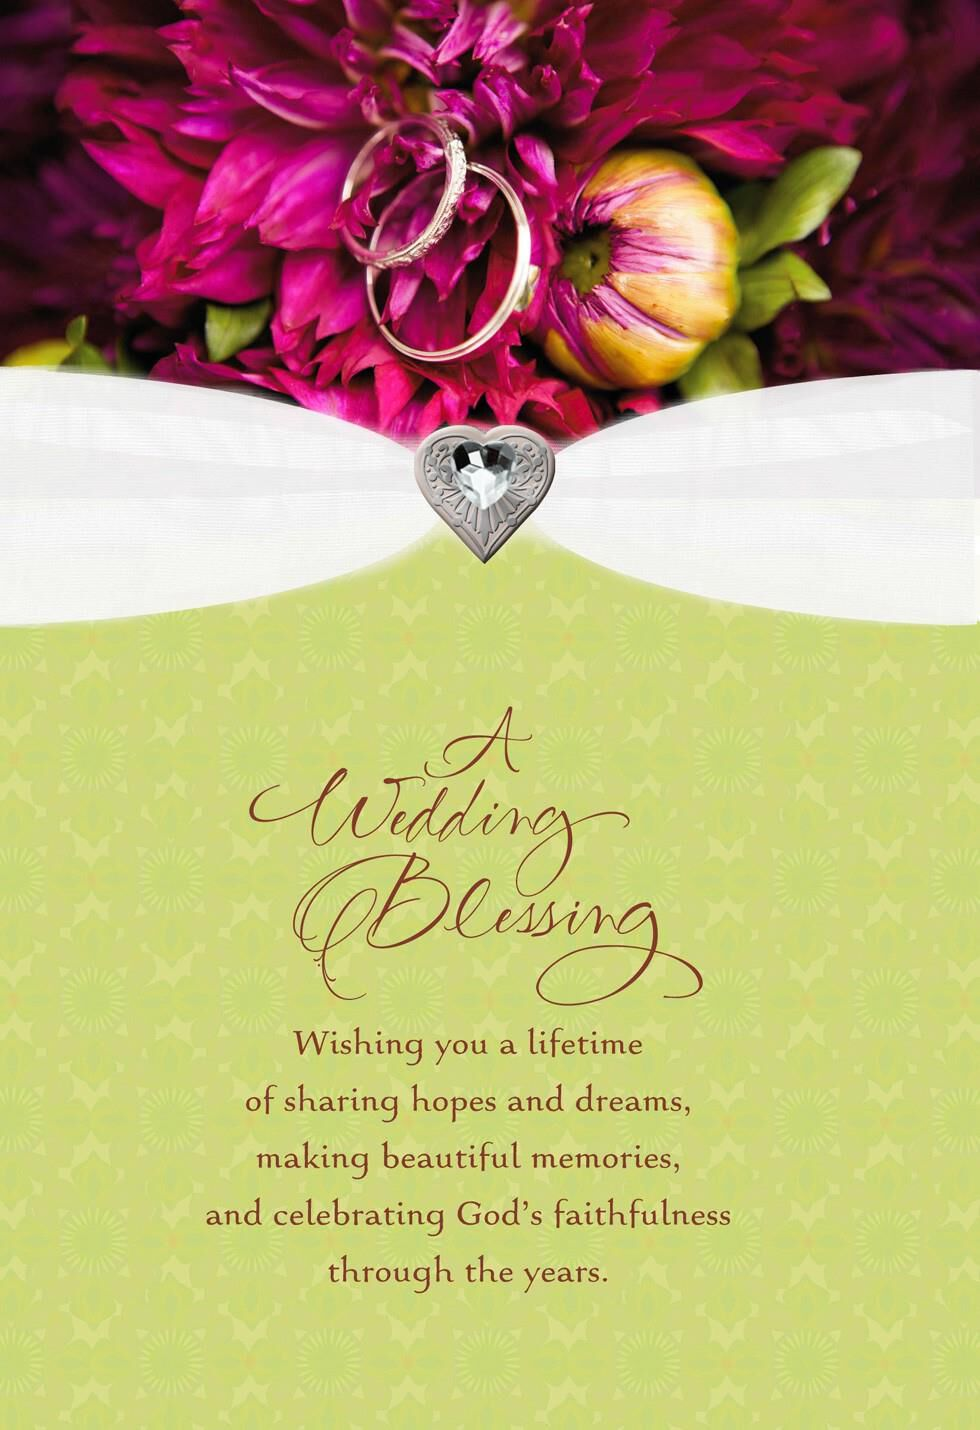 Free Wedding Ecards Hallmark 28 Images Oval Flowers And Laughter